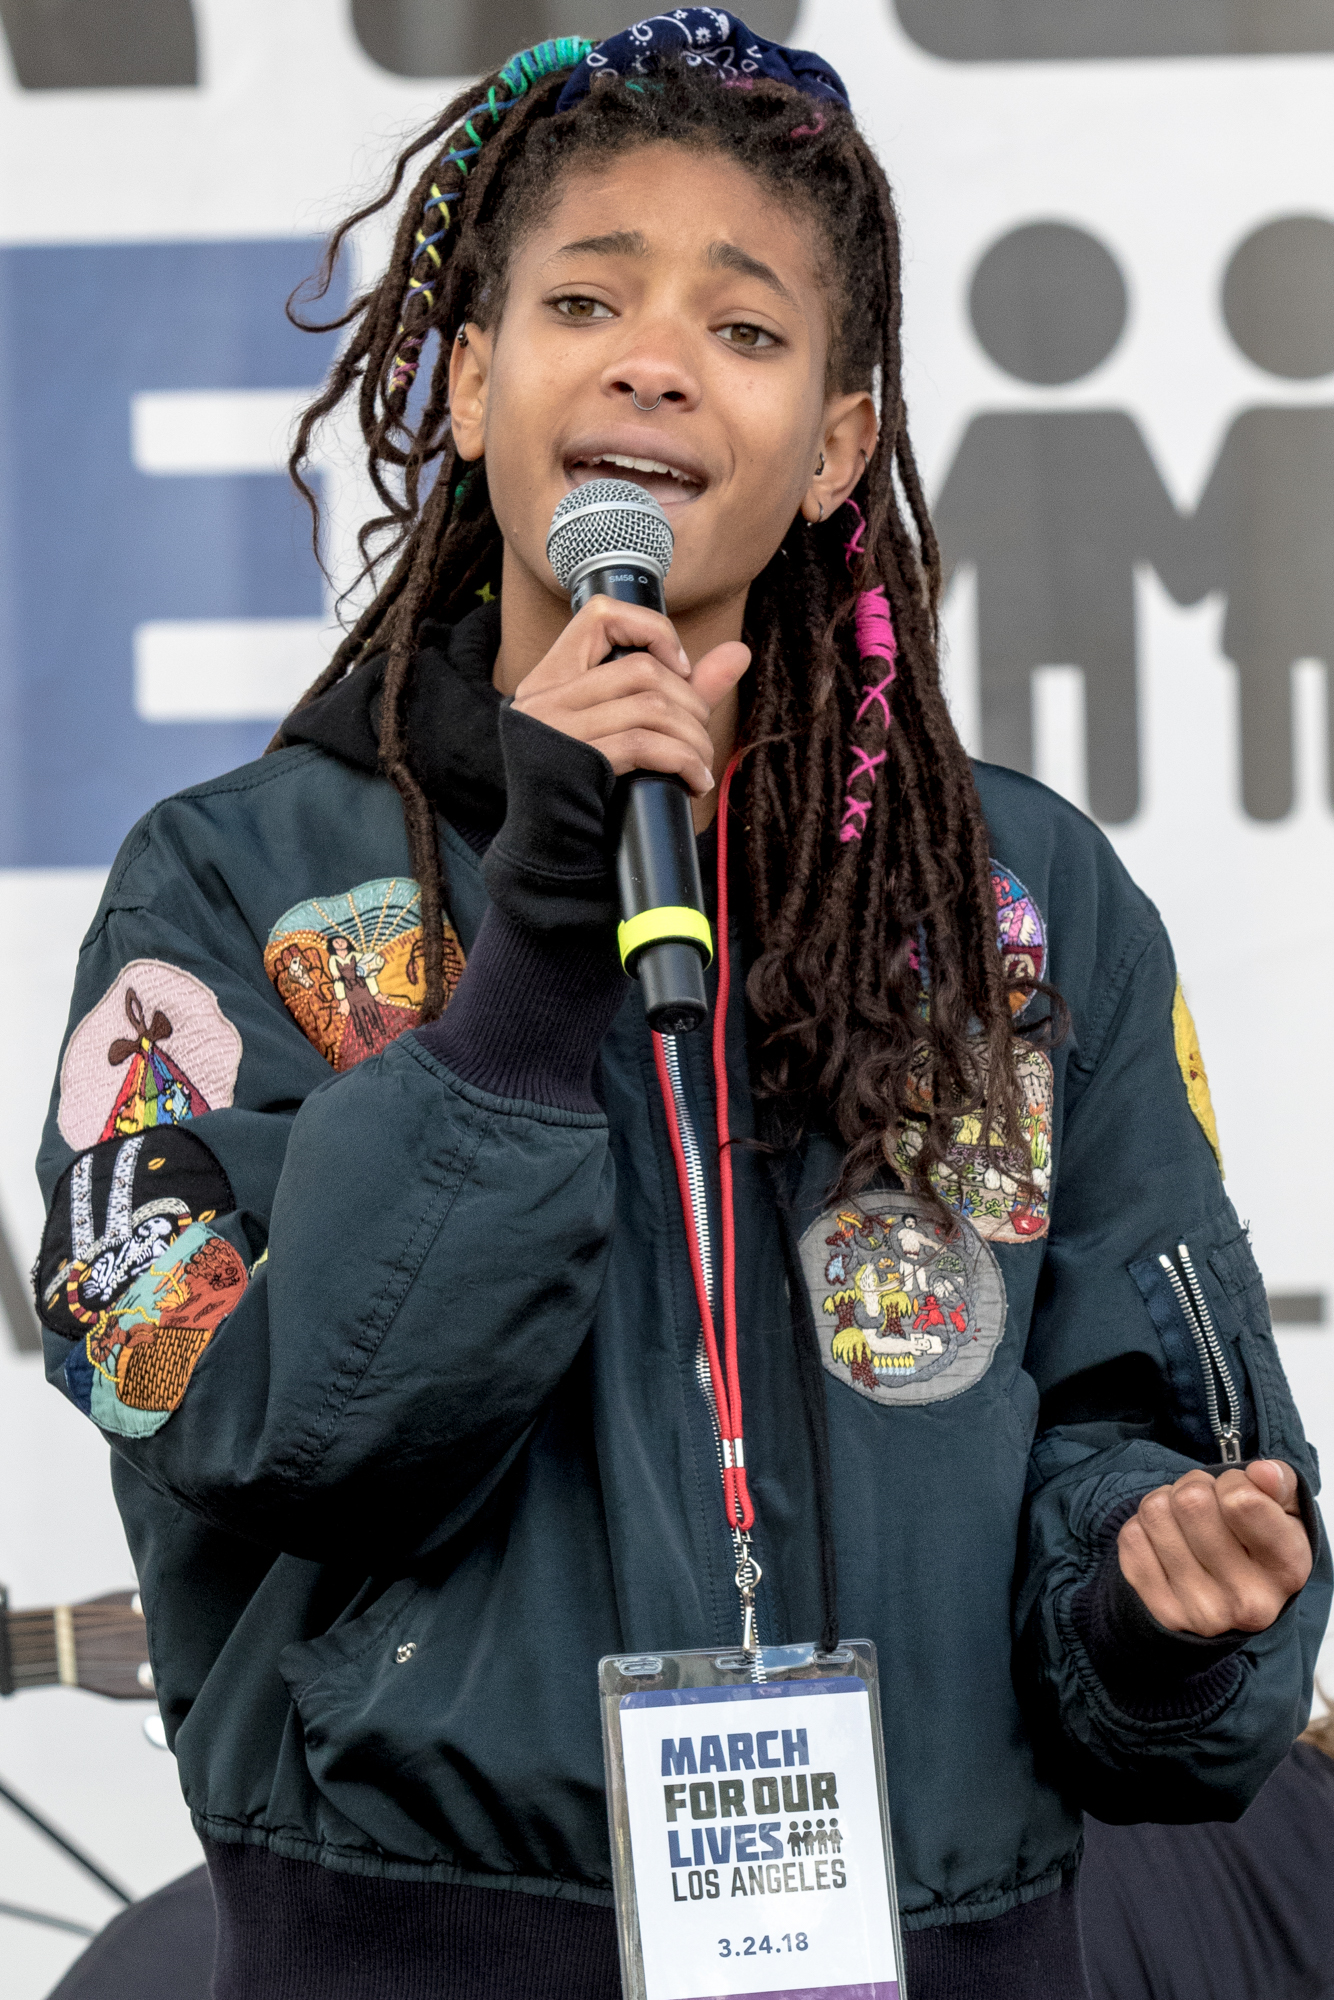 Willow Smith was one of the many celebrities who came to show support for striceter gun laws at the March For Our Lives protest on March 24, 2018 in Los Angeles, California. (Zane Meyer-Thornton/Corsair Photo)